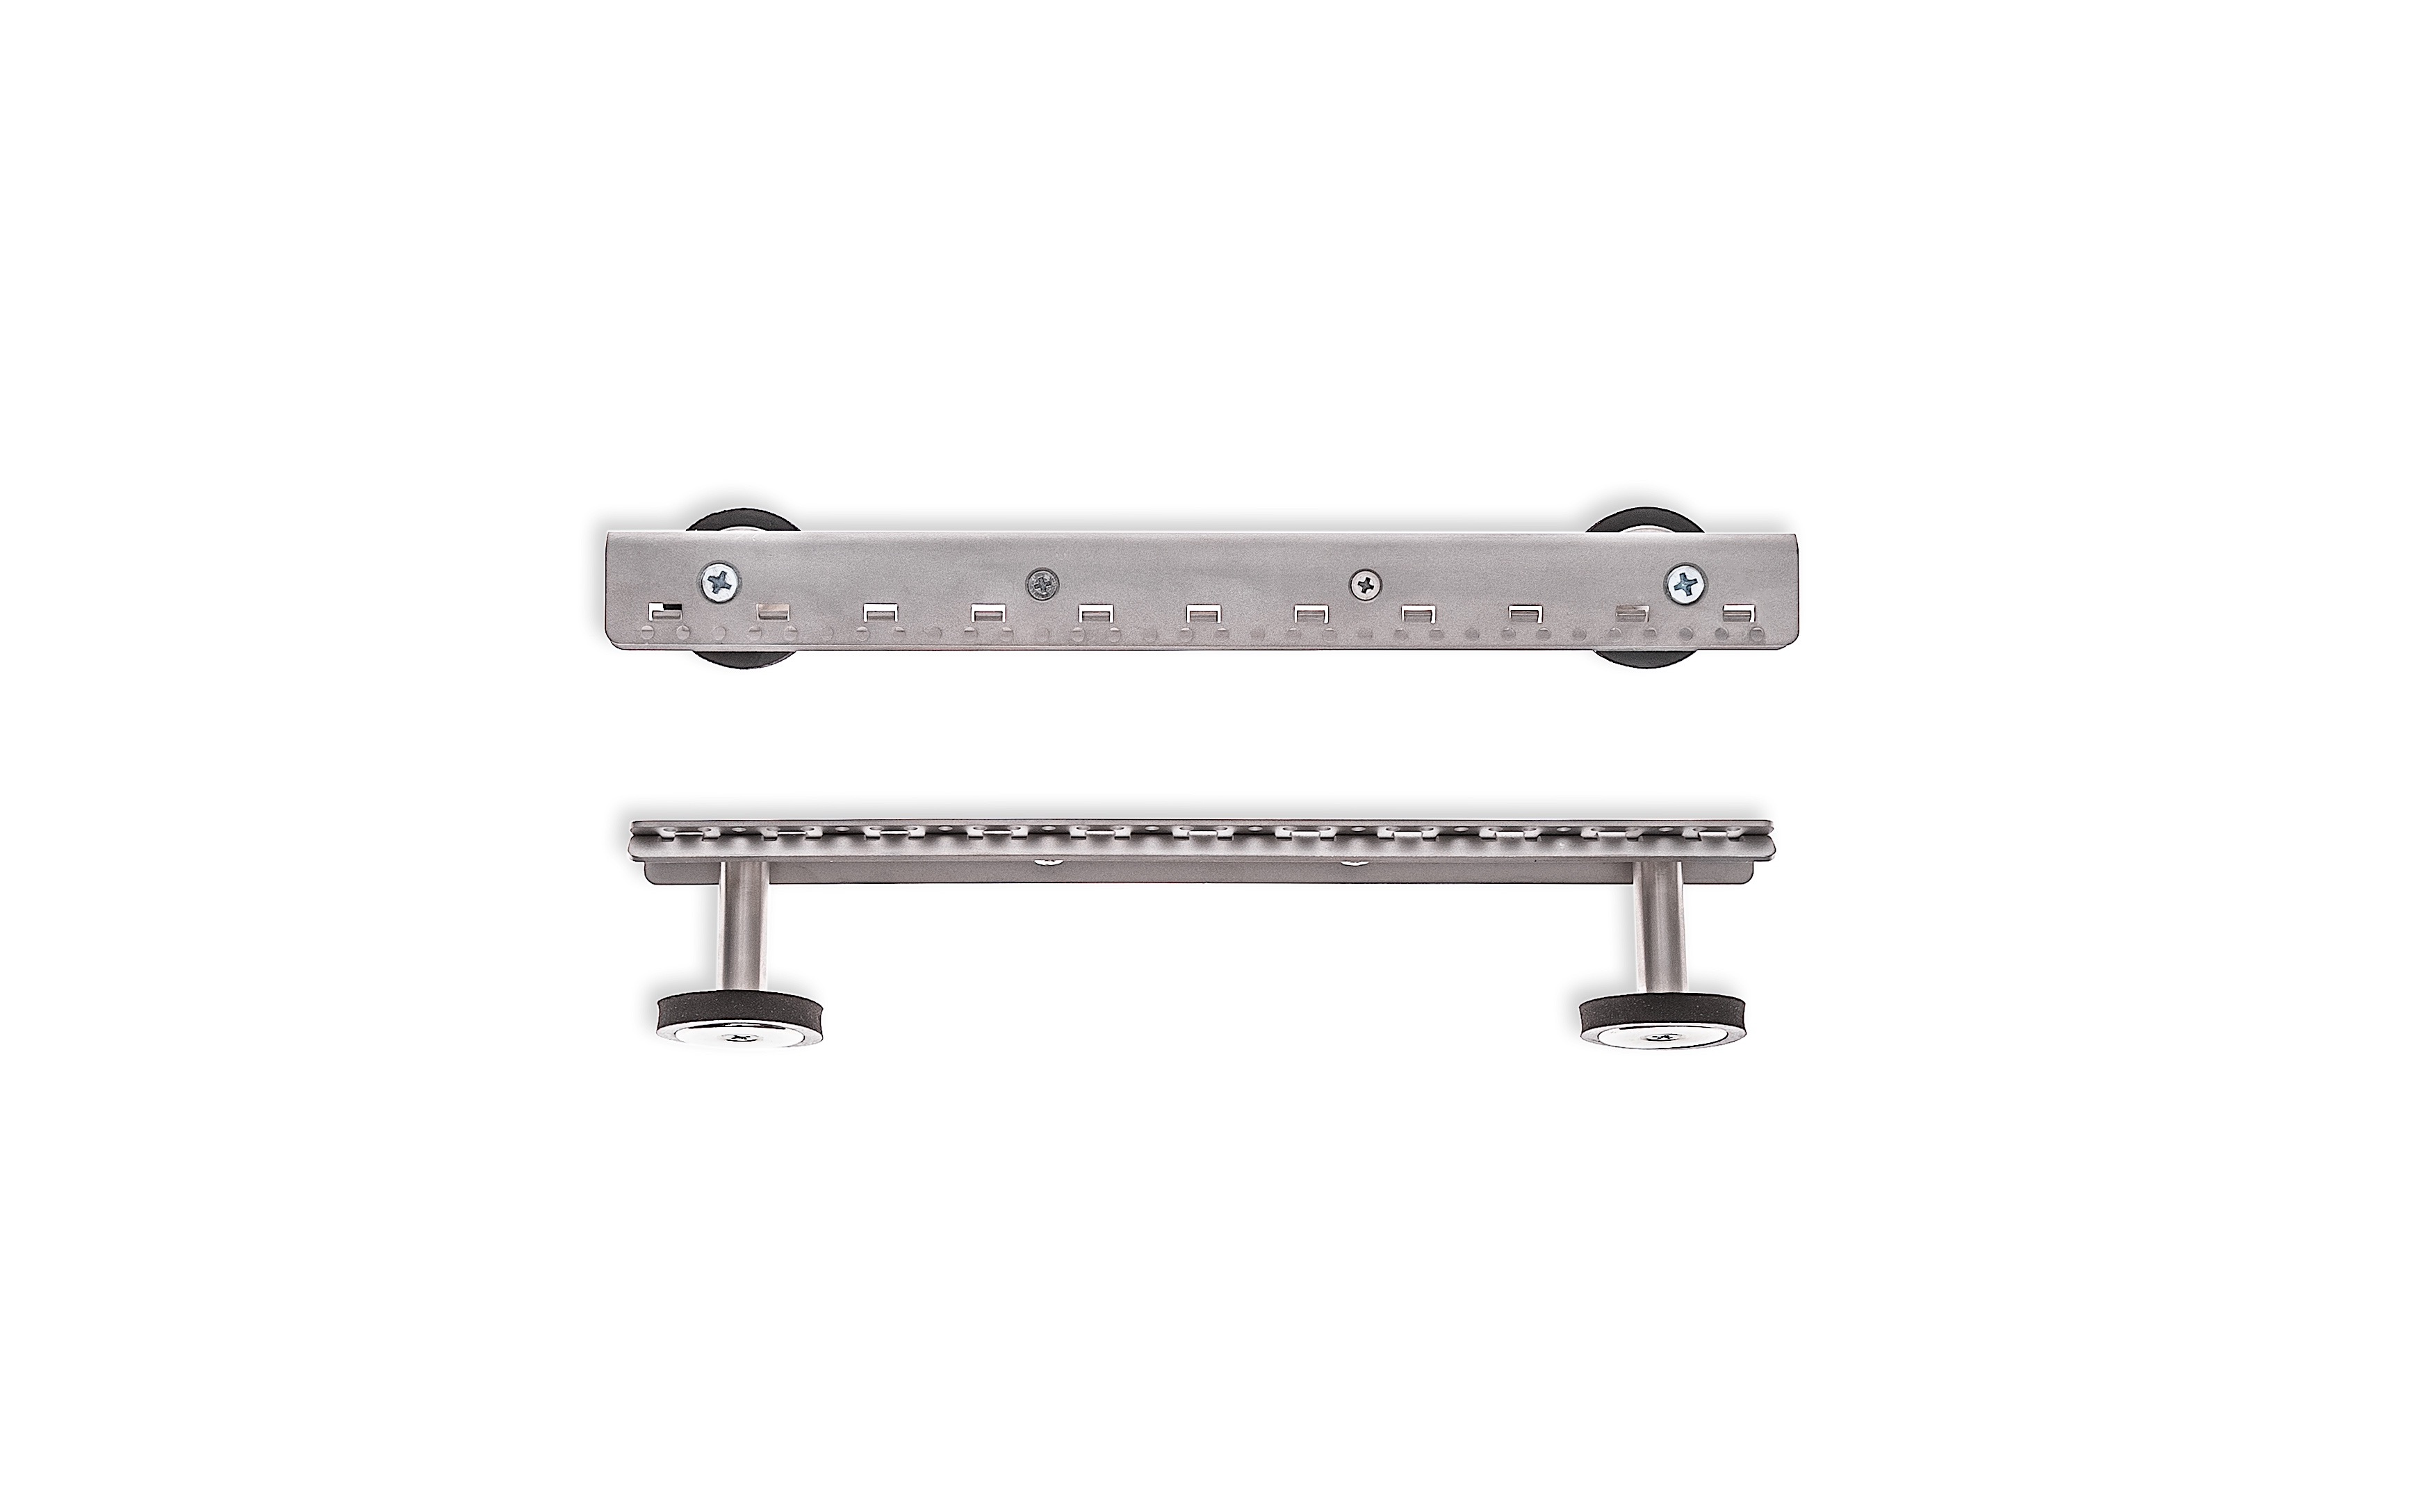 PCB magnet holder rail, h=20mm, l=300mm